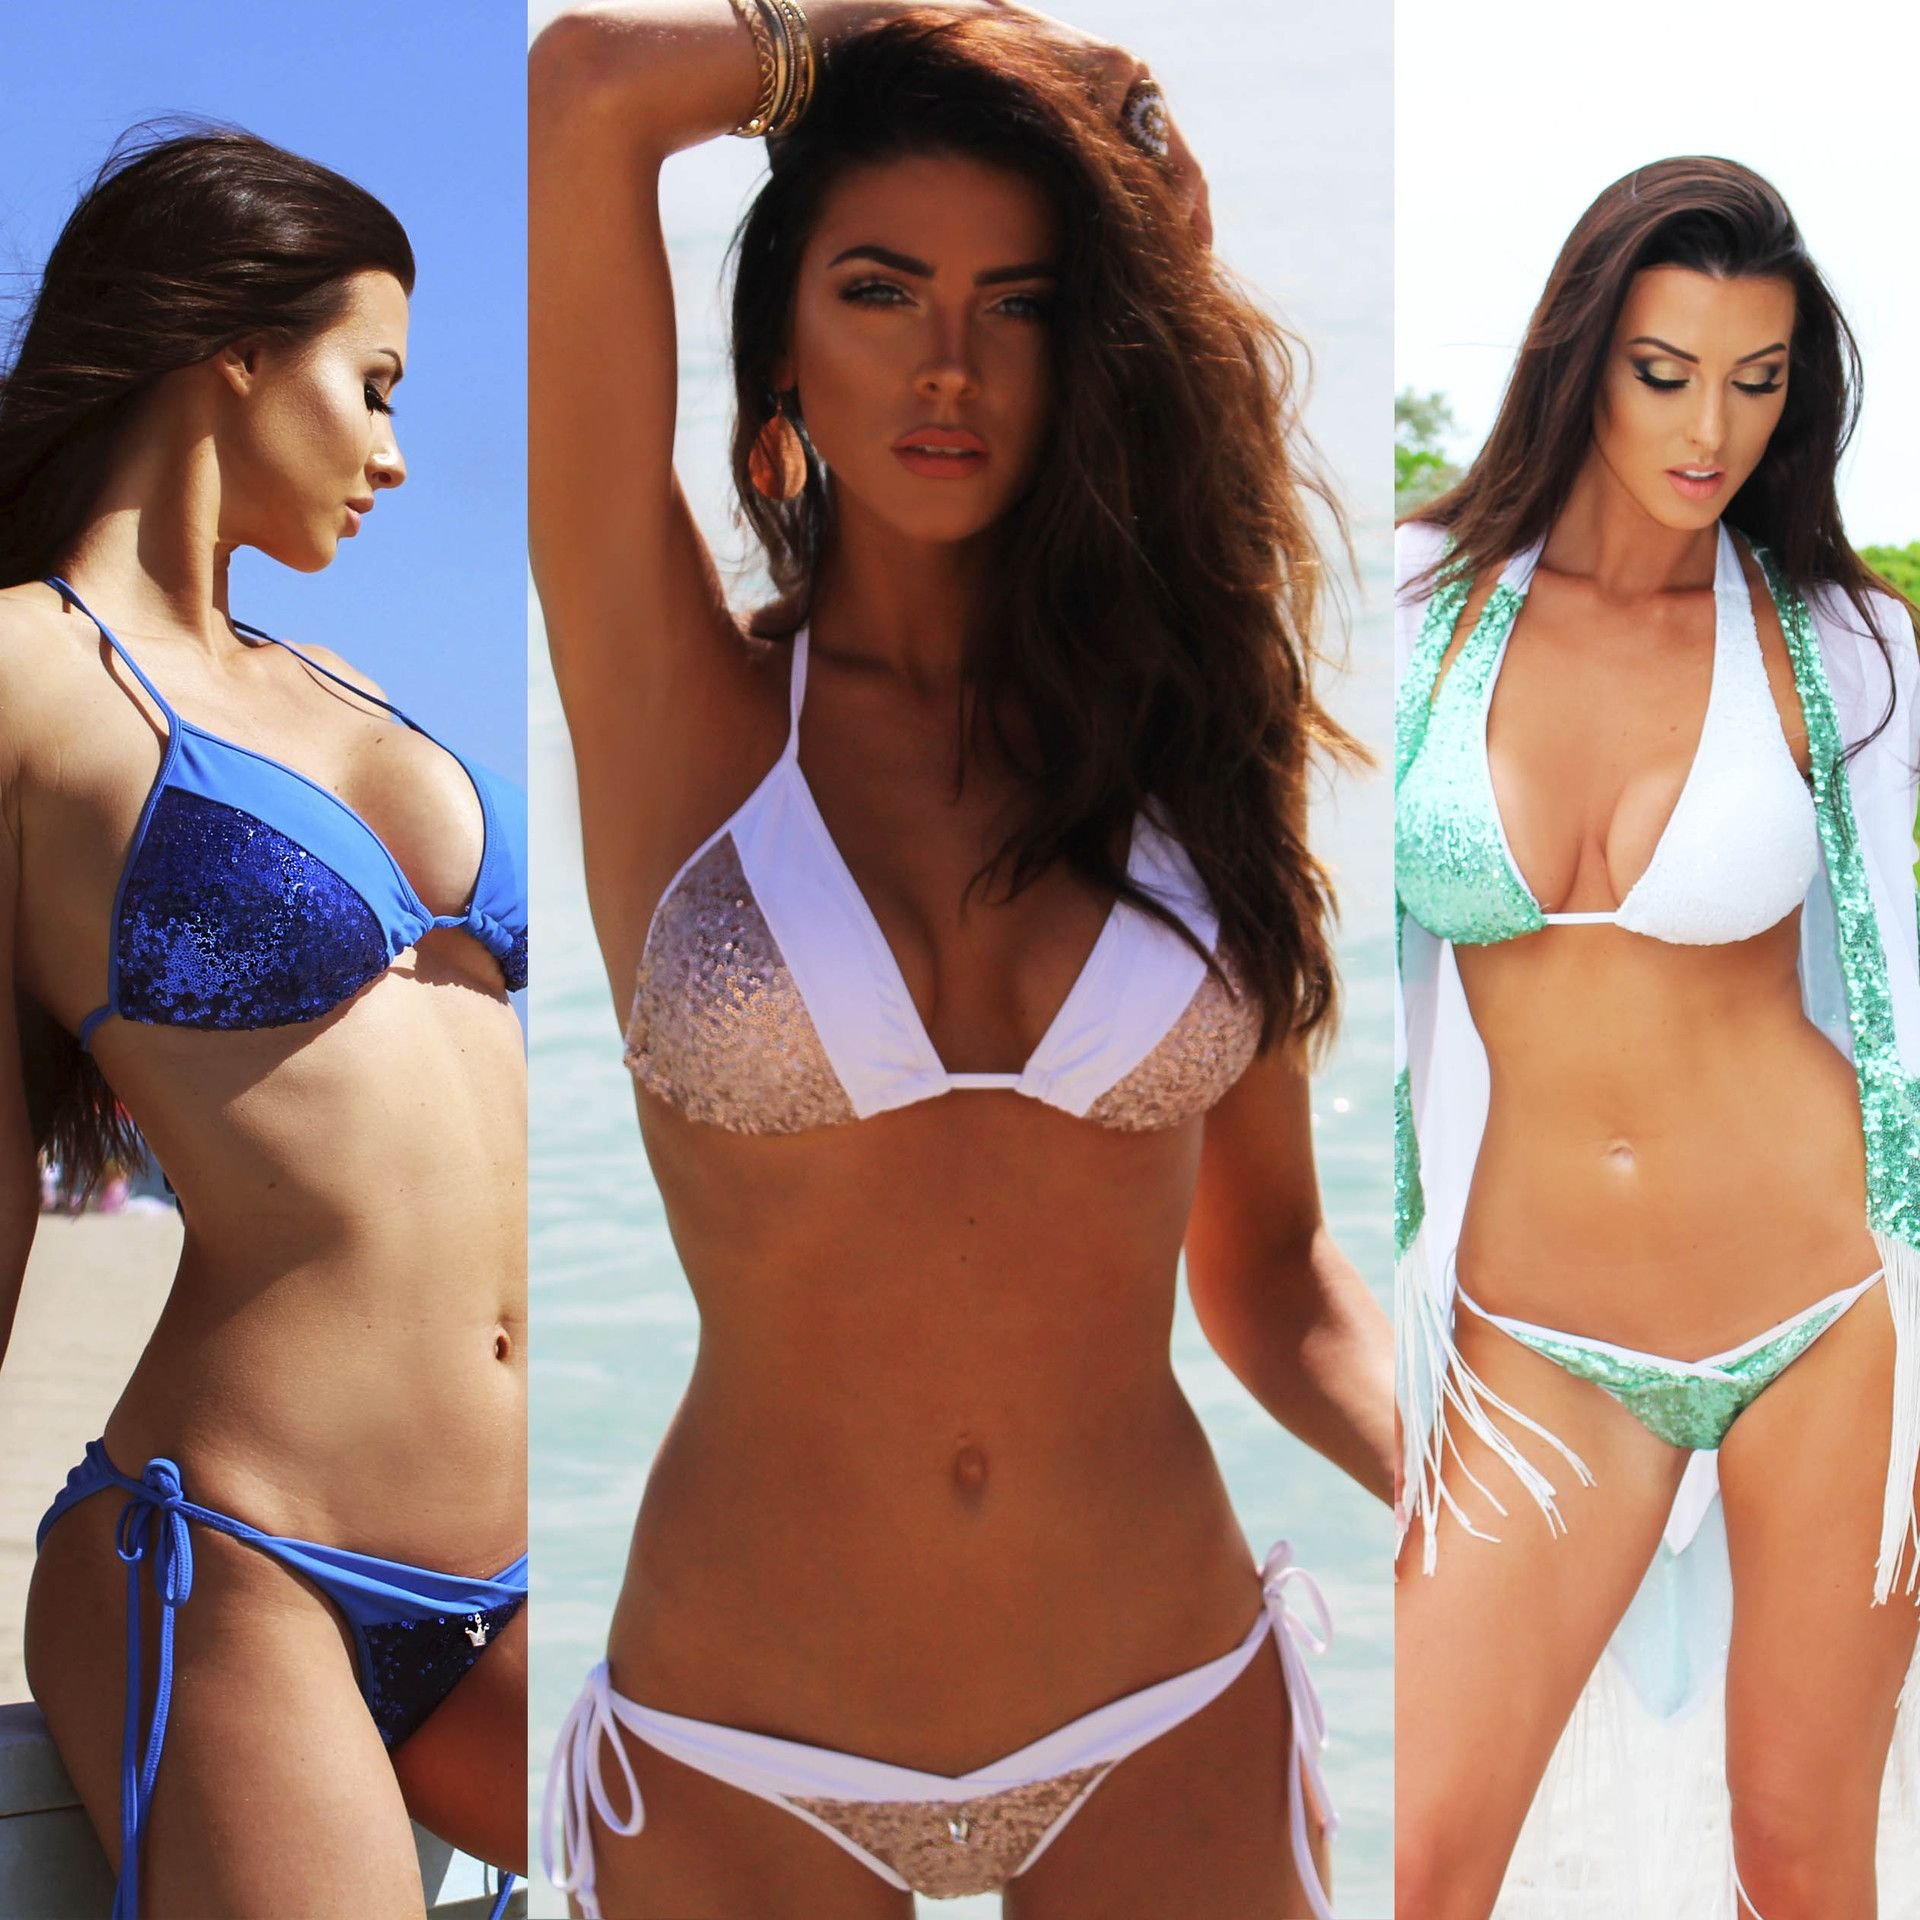 68f4fe4a4cb2 ... from China european bikini Suppliers  2017 Sexy Hot Women Bikini  European and American Swimming Outfit Candy Color Beach Party Sports  Bathing Suit Lady ...